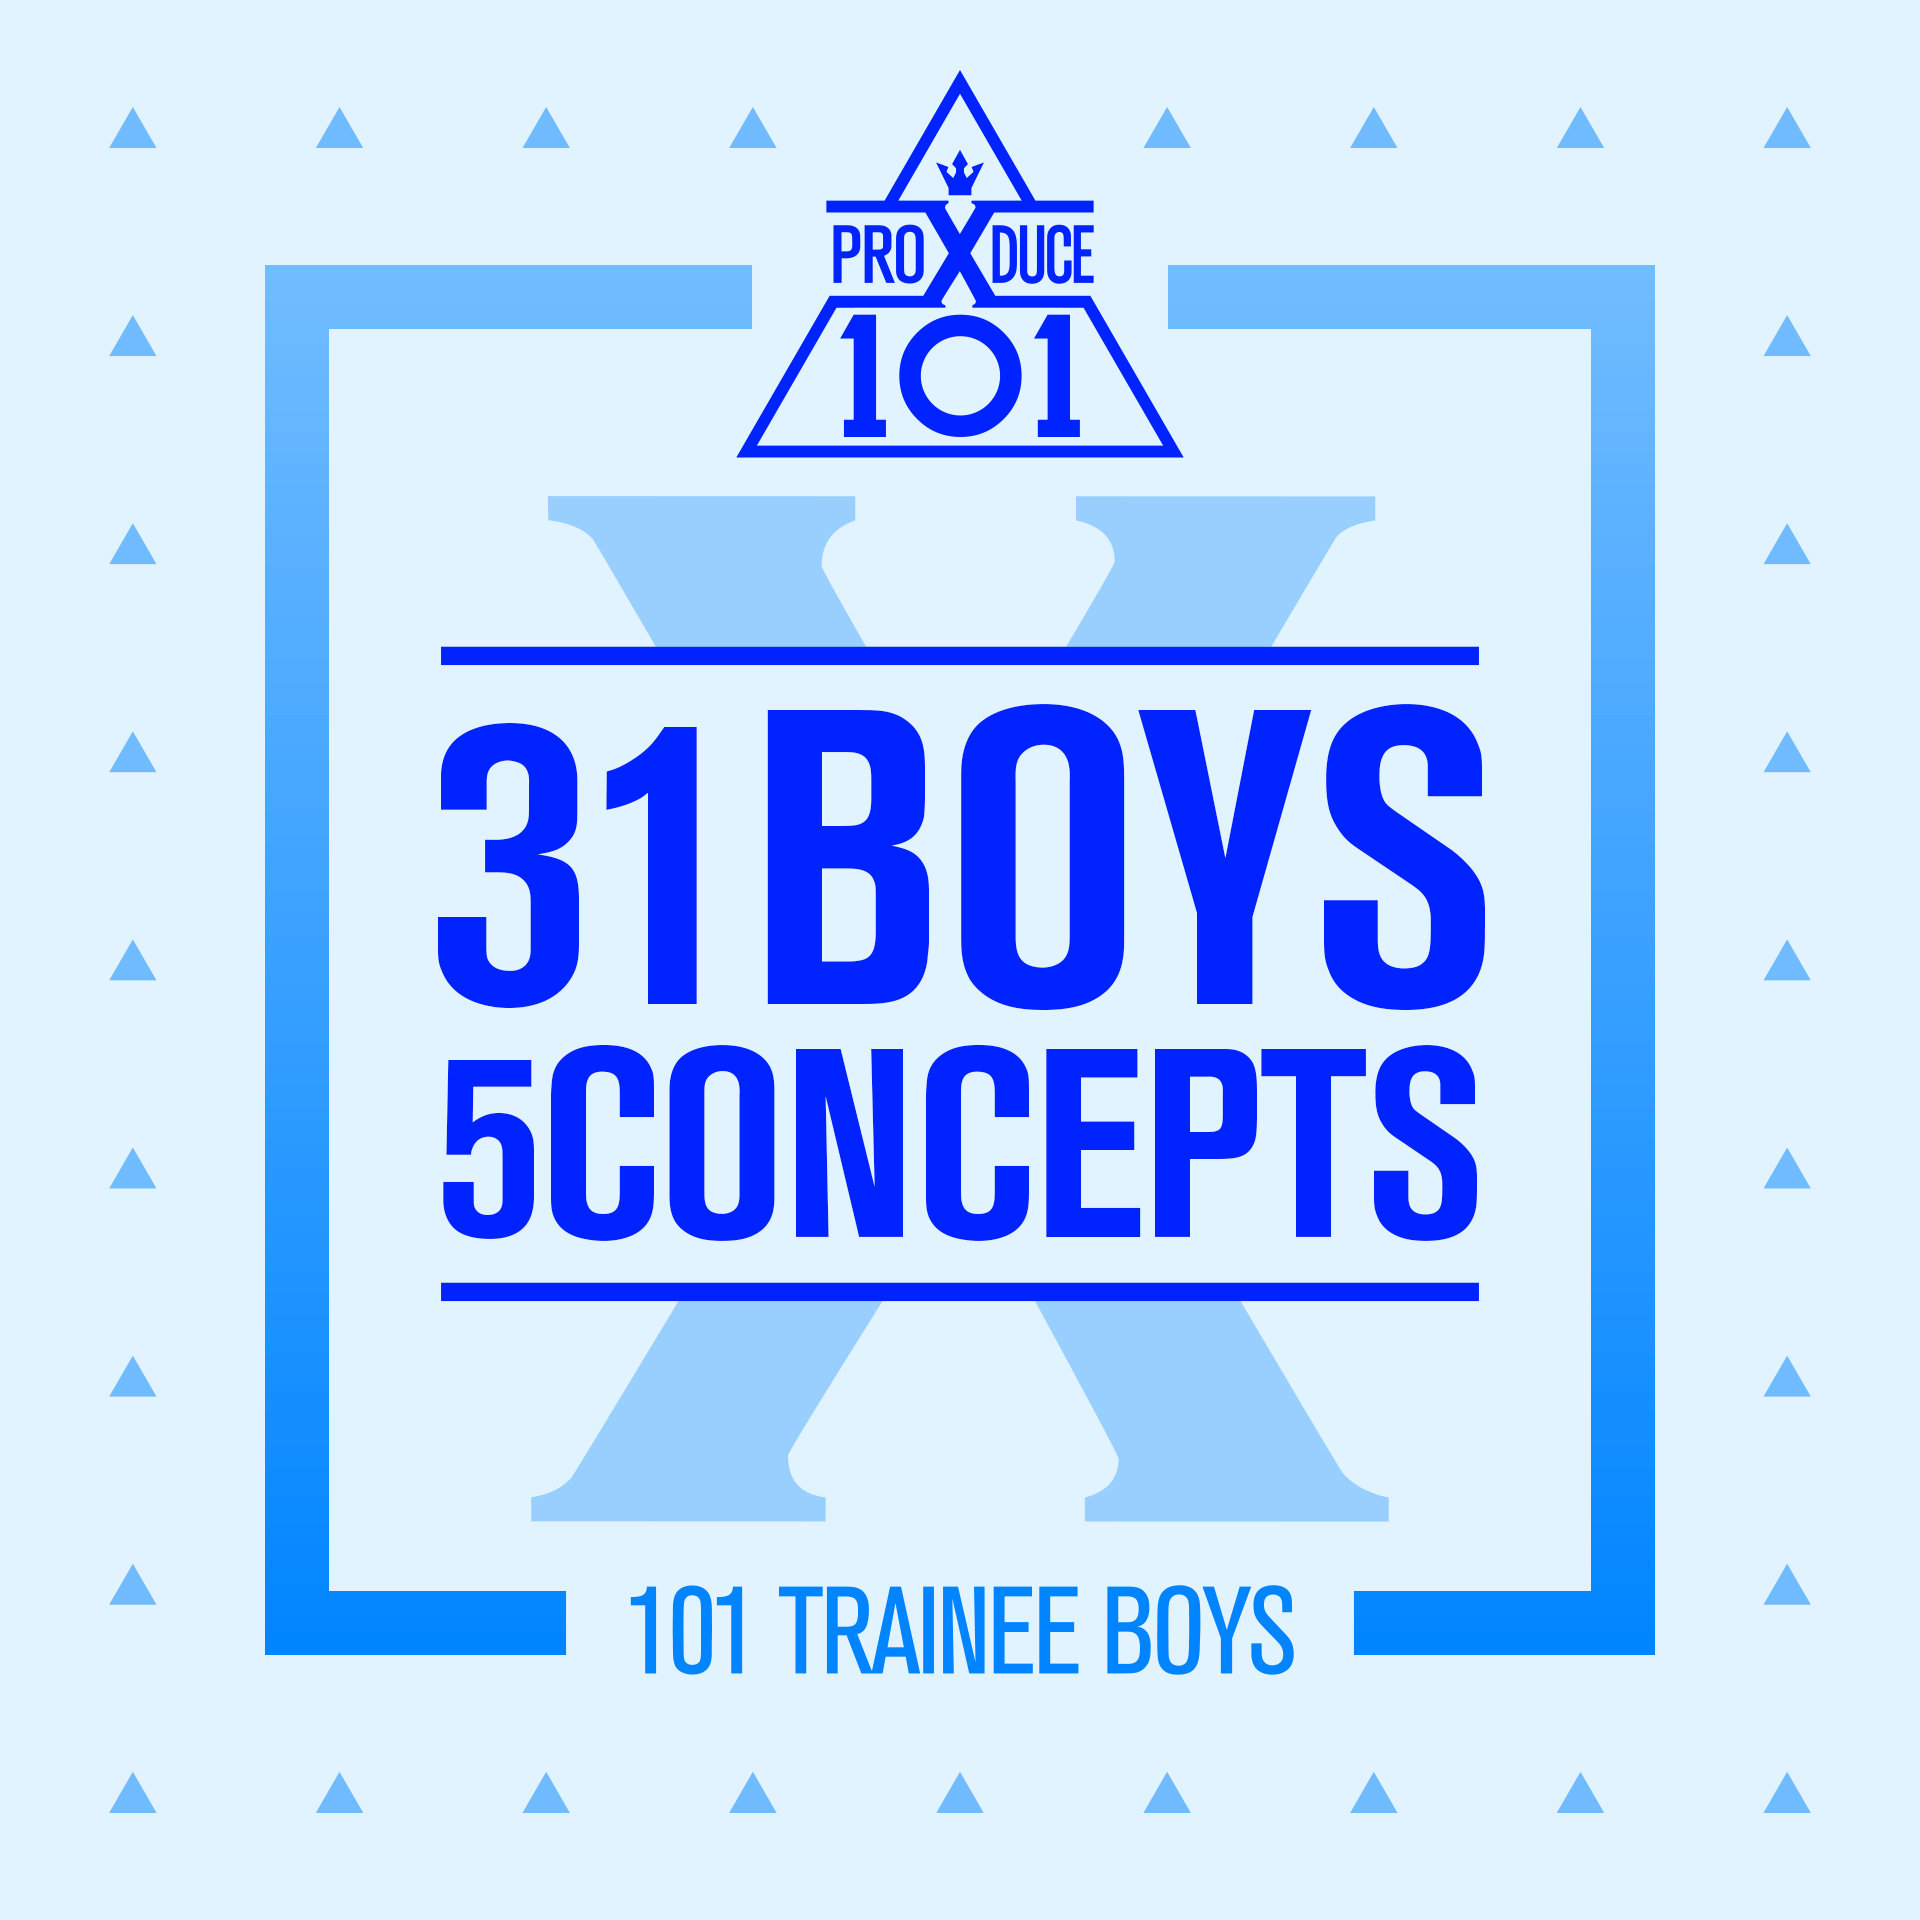 Produce X 101: 31 Boys 5 Concepts